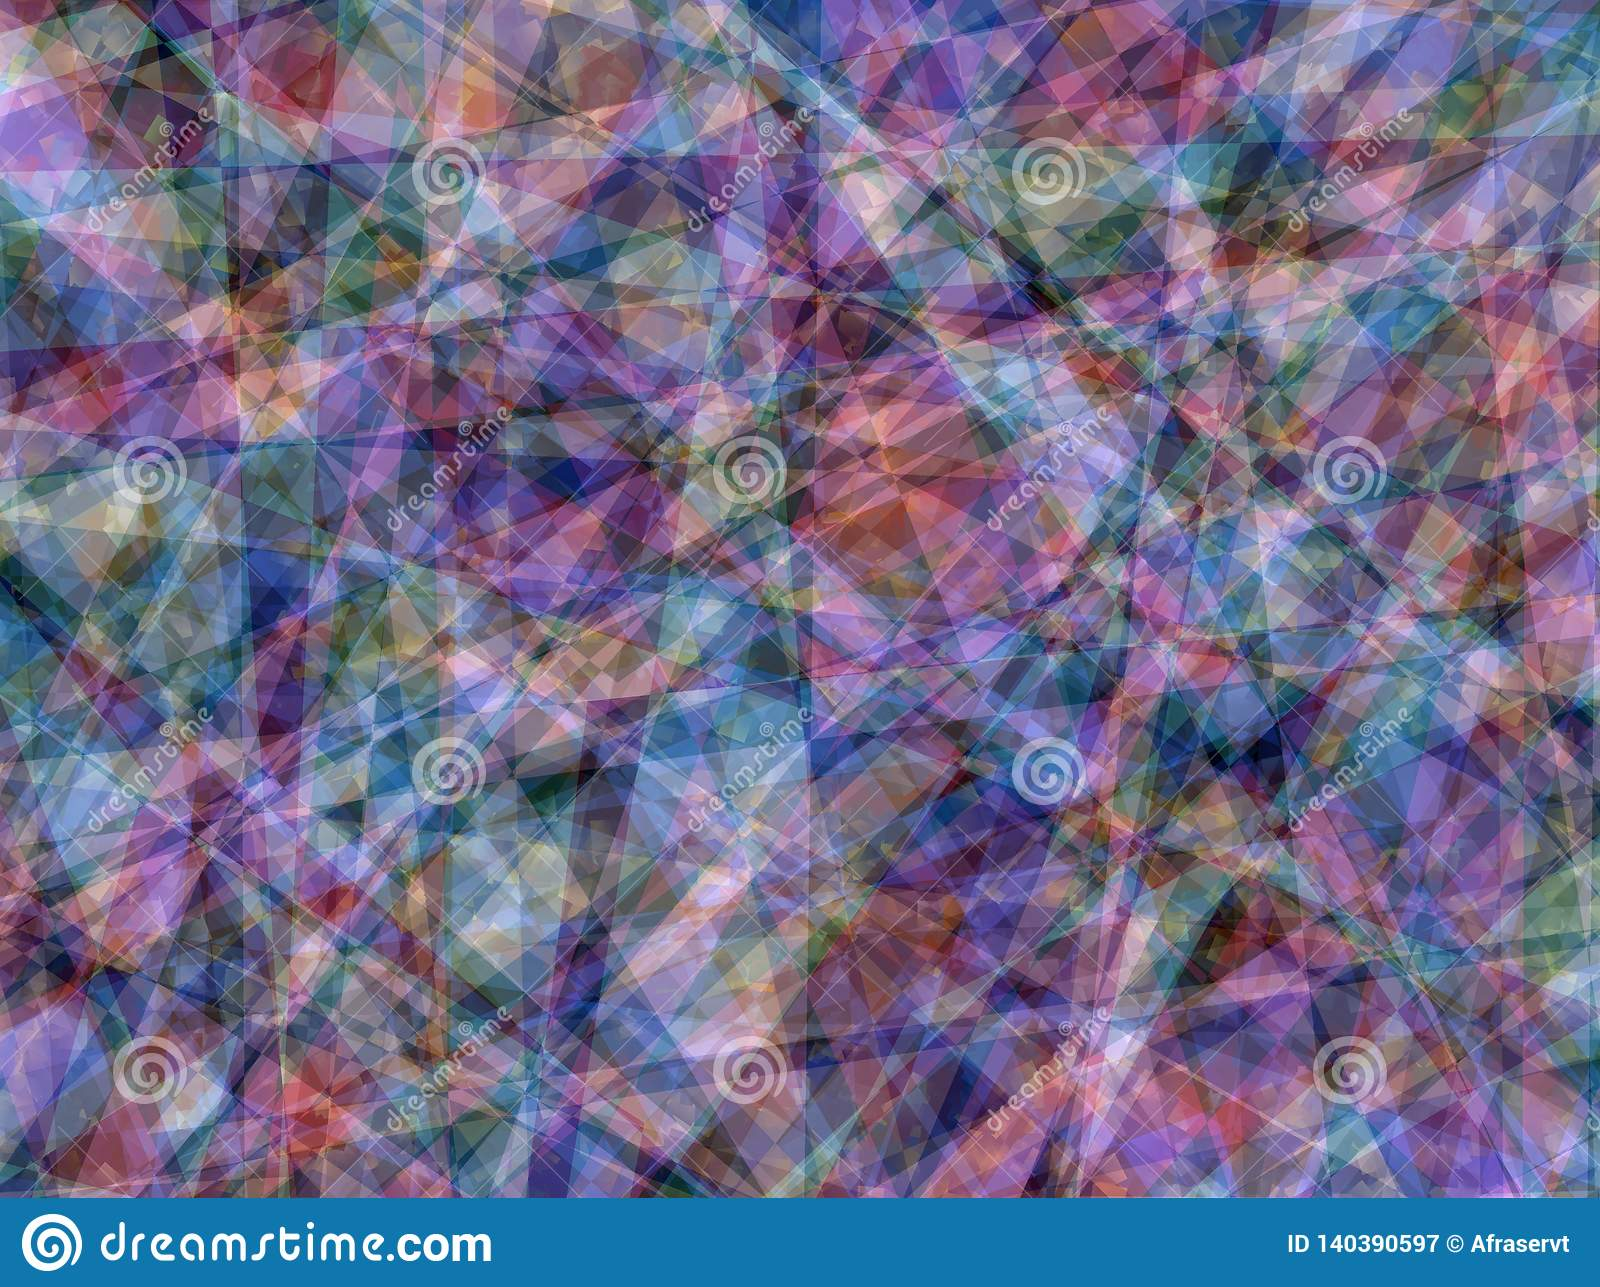 Multi-Color Geometric Abstract Background Texture Wallpaper